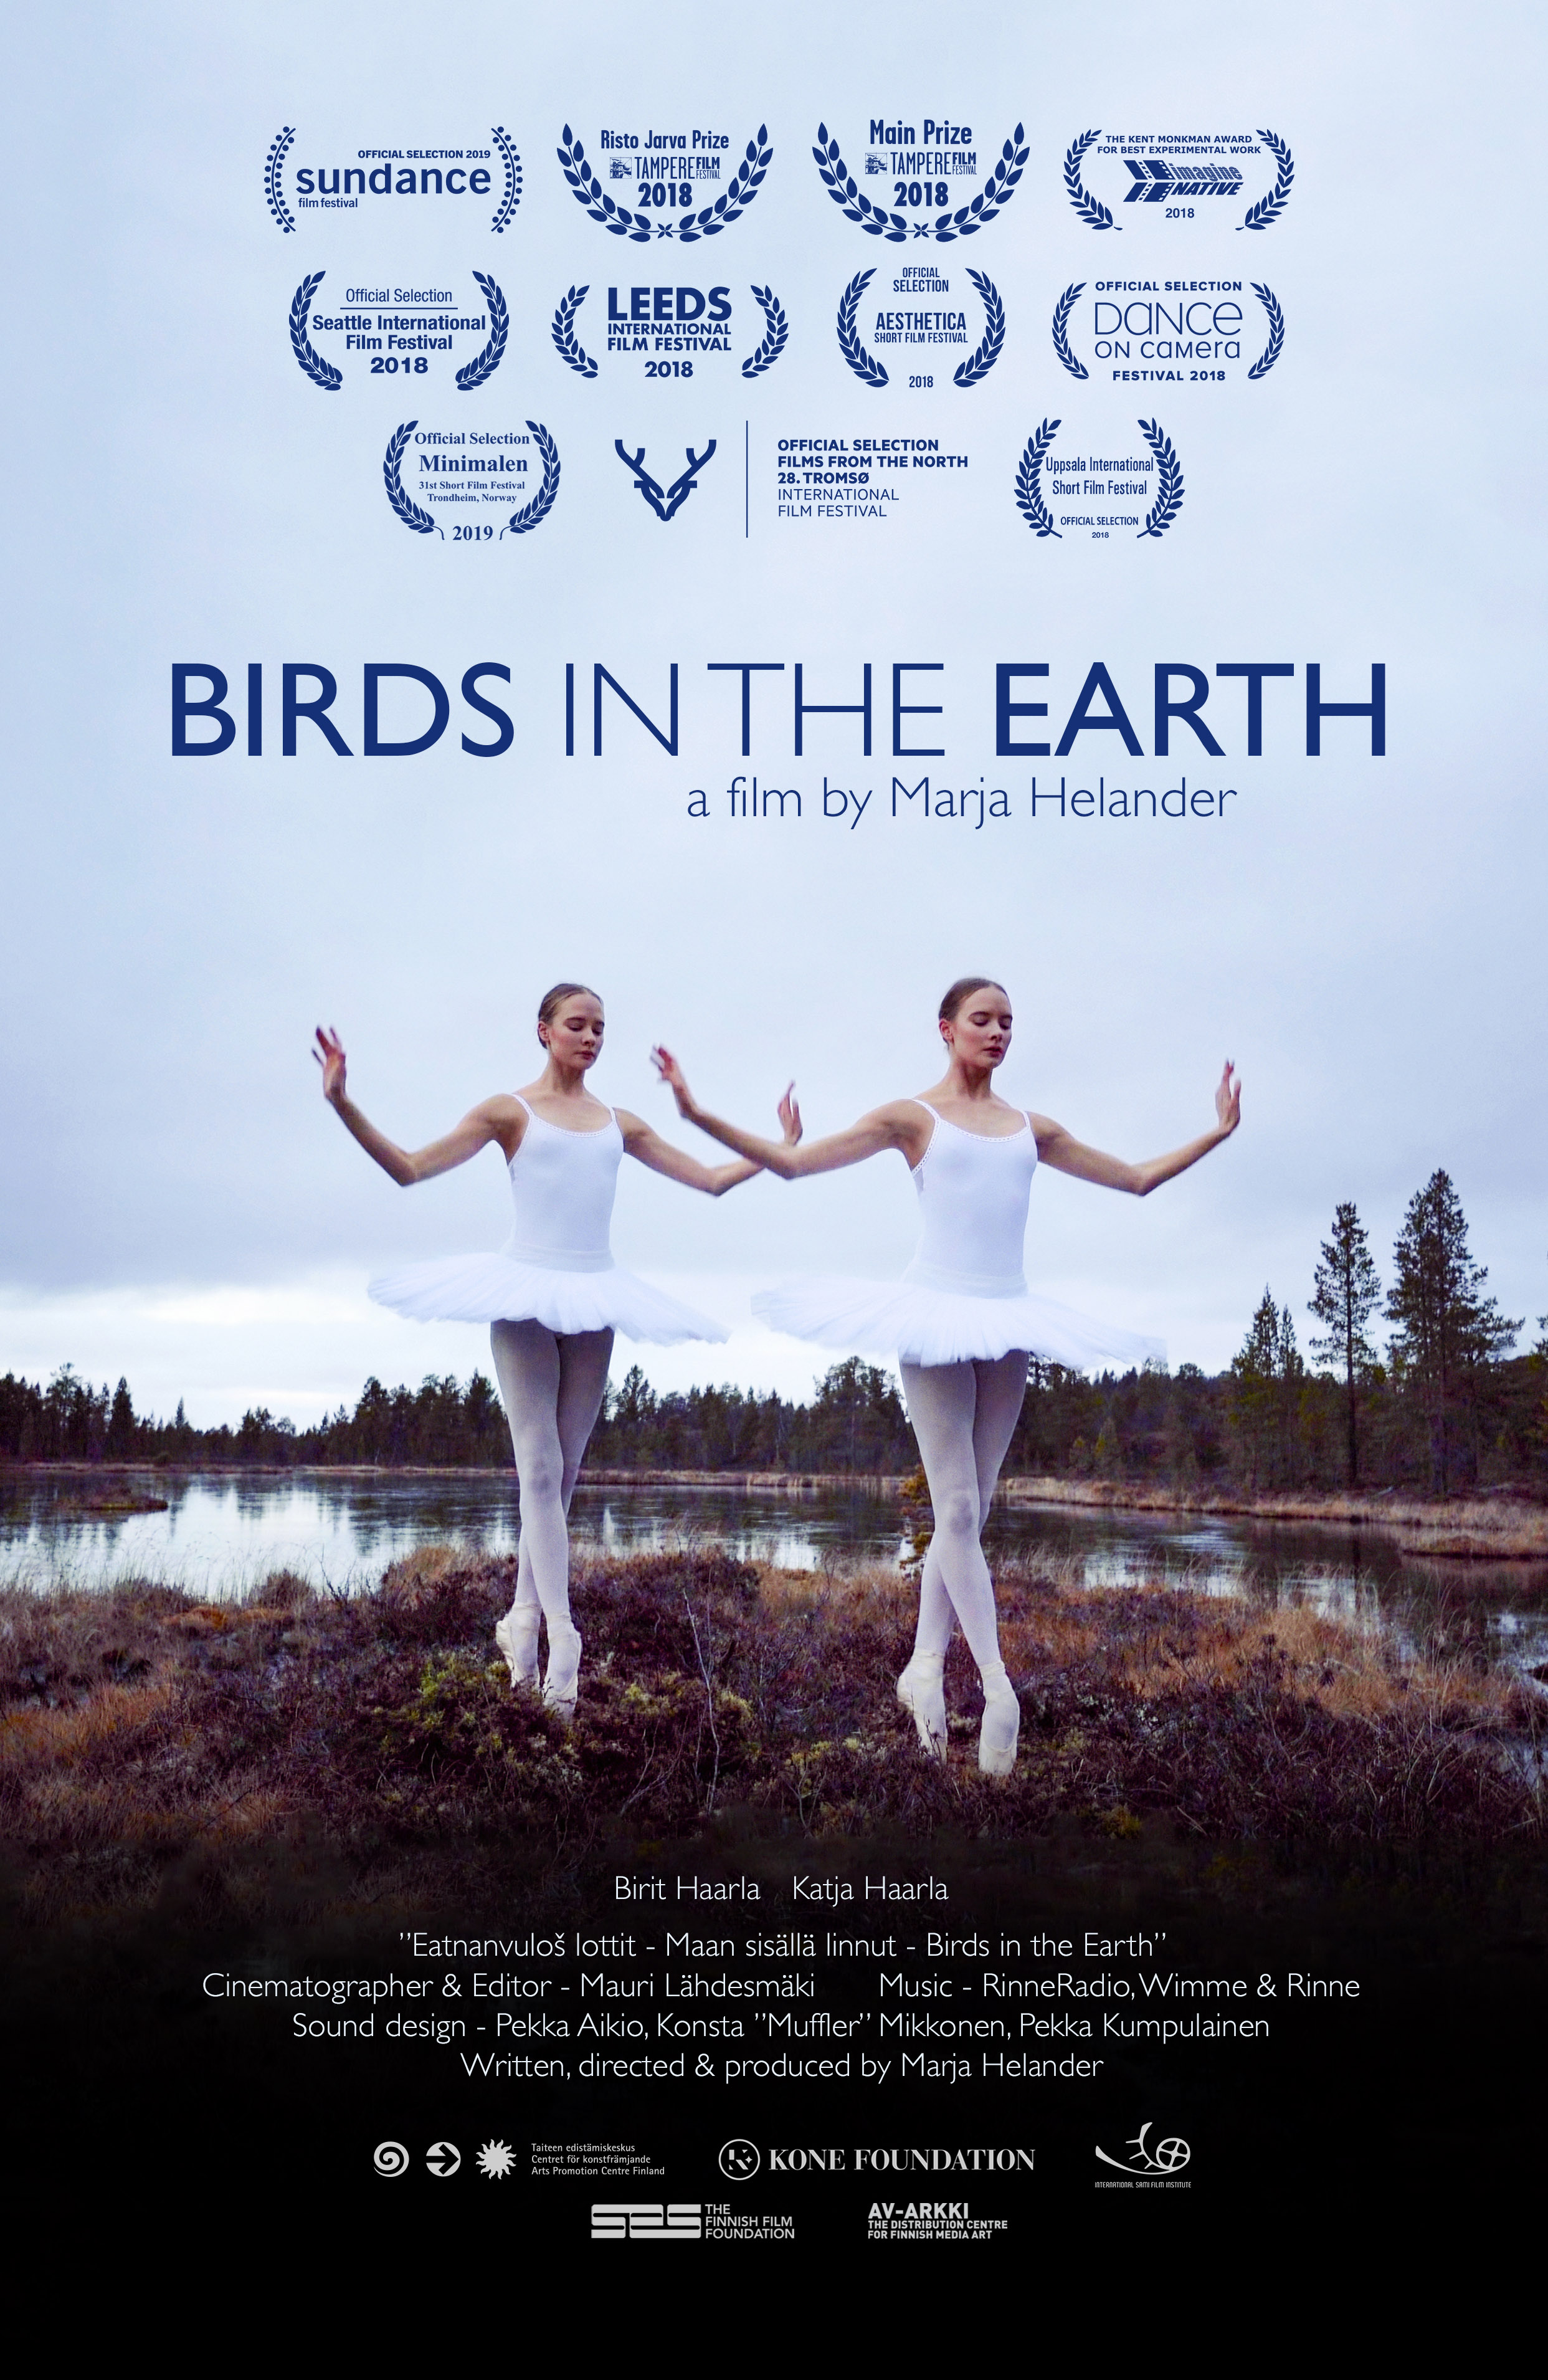 Birds in the Earth poster